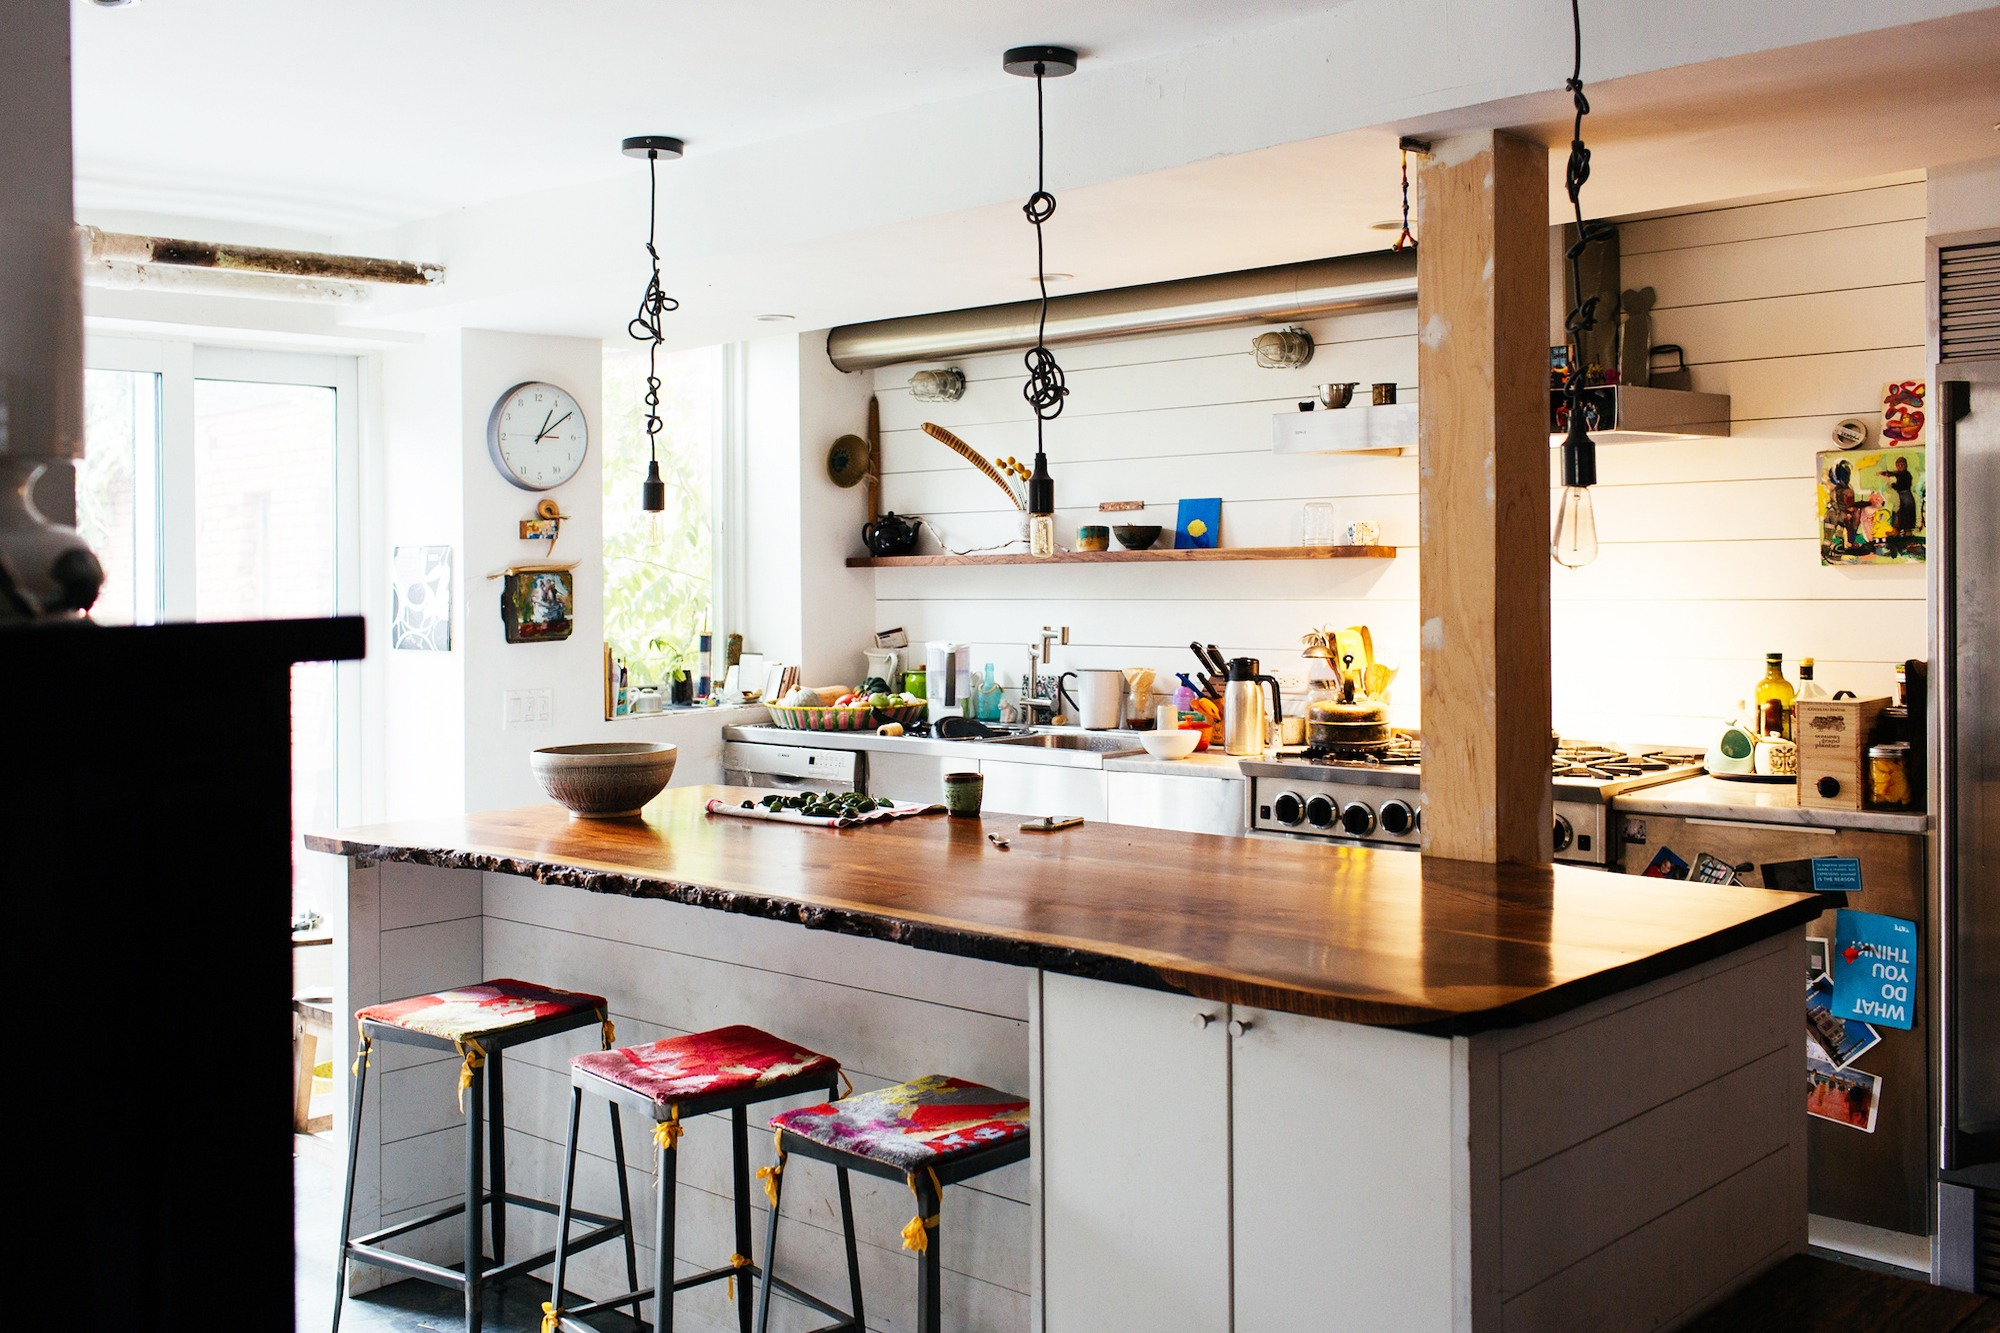 mysqft-amy-helfand-kitchen-edited